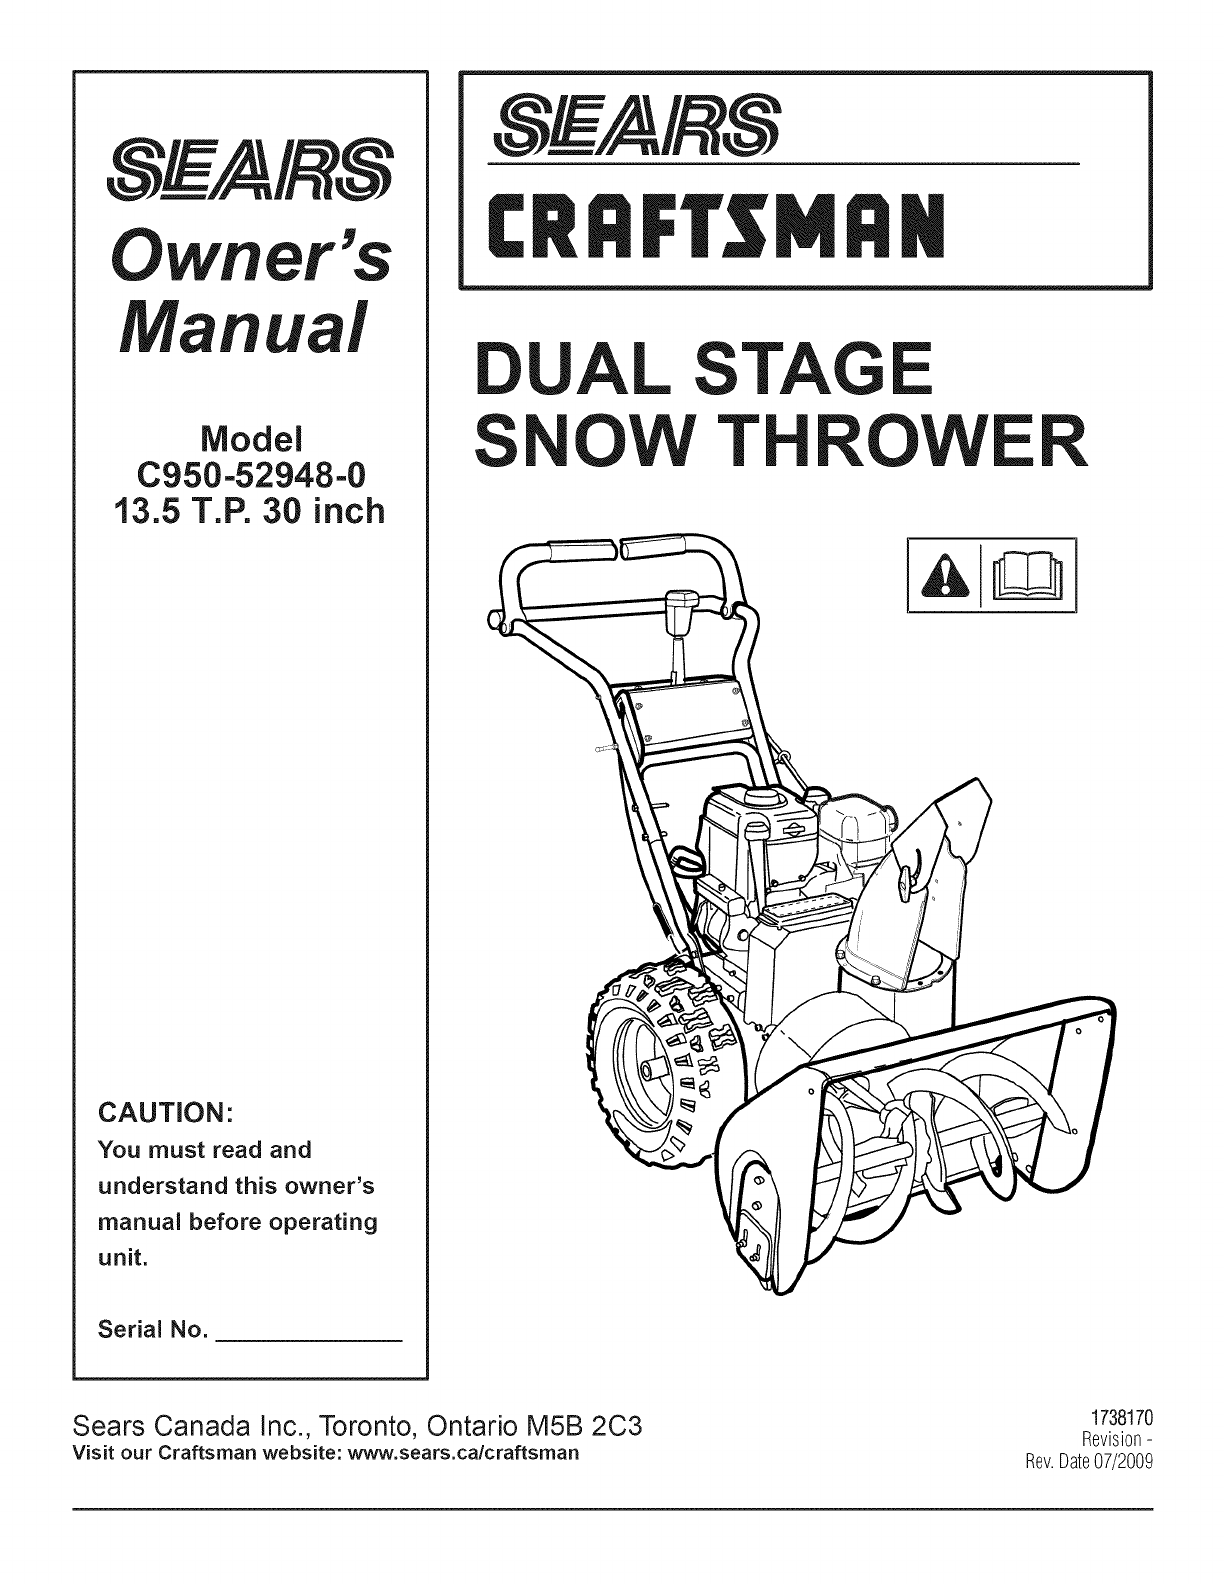 Taille Pneu 406 Coupé Craftsman C950 52948 User Manual Snow Thrower Manuals And Guides